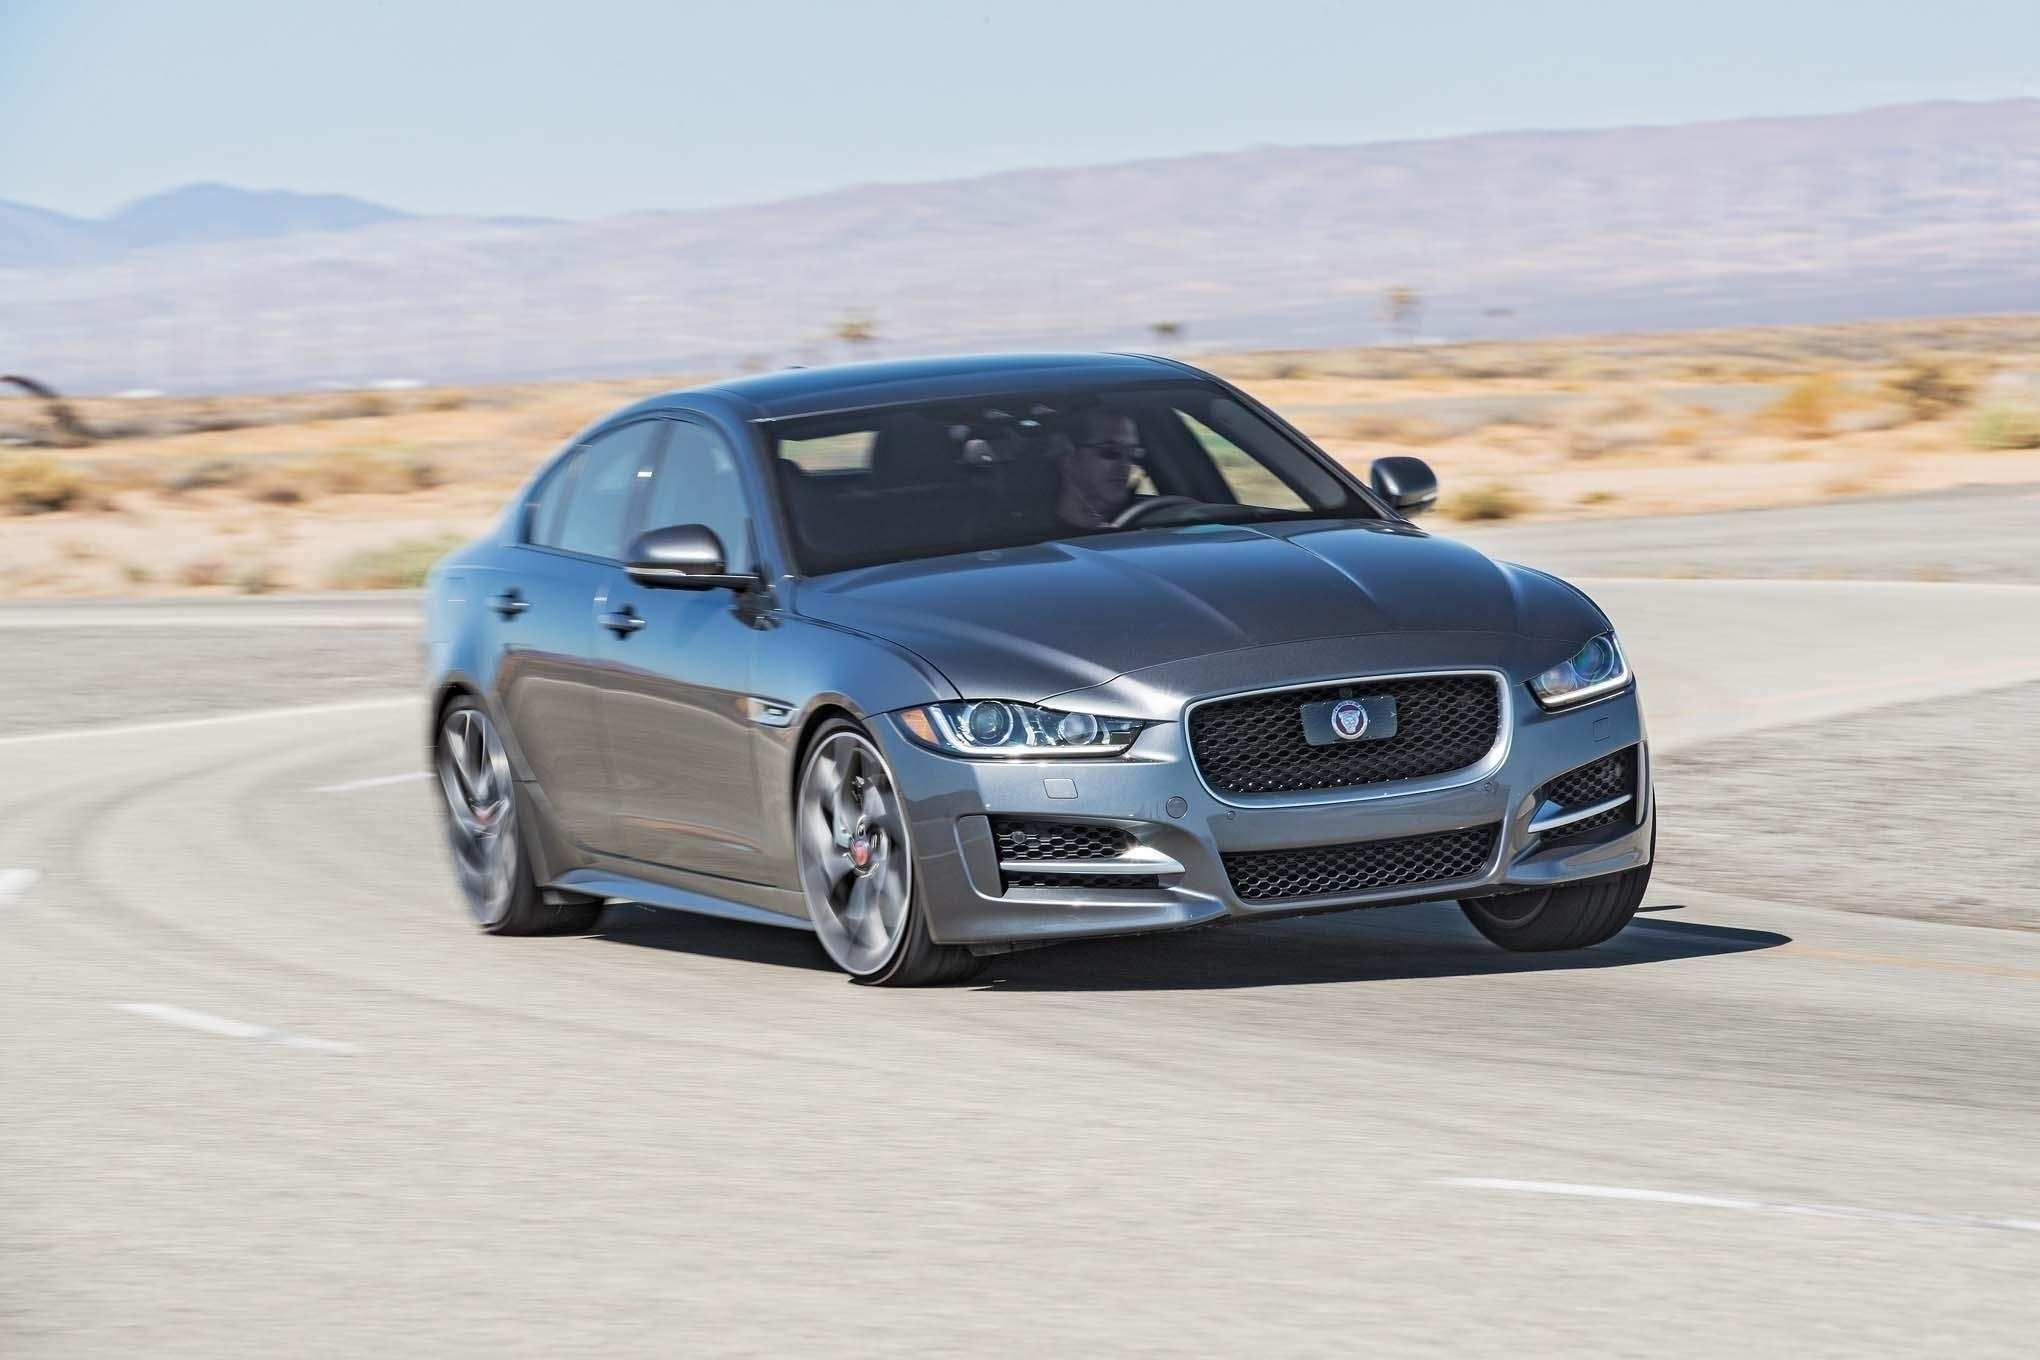 43 The 2019 All Jaguar Xe Sedan Wallpaper